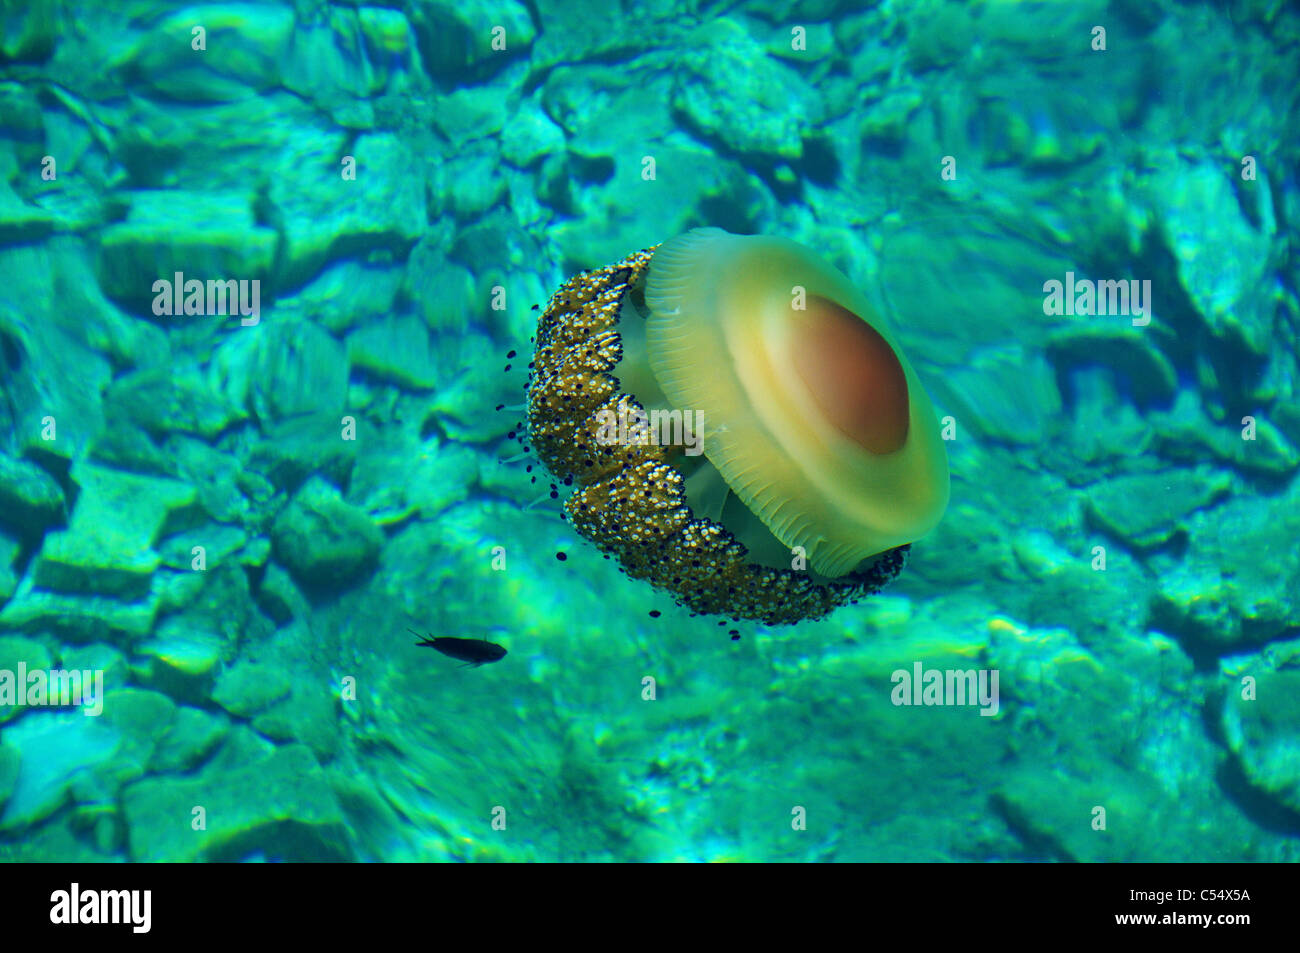 A gorgeous colored jelly fish over a stony sea bad in Mediterranean waters of Greece, accompanied by a small fish. Stock Photo